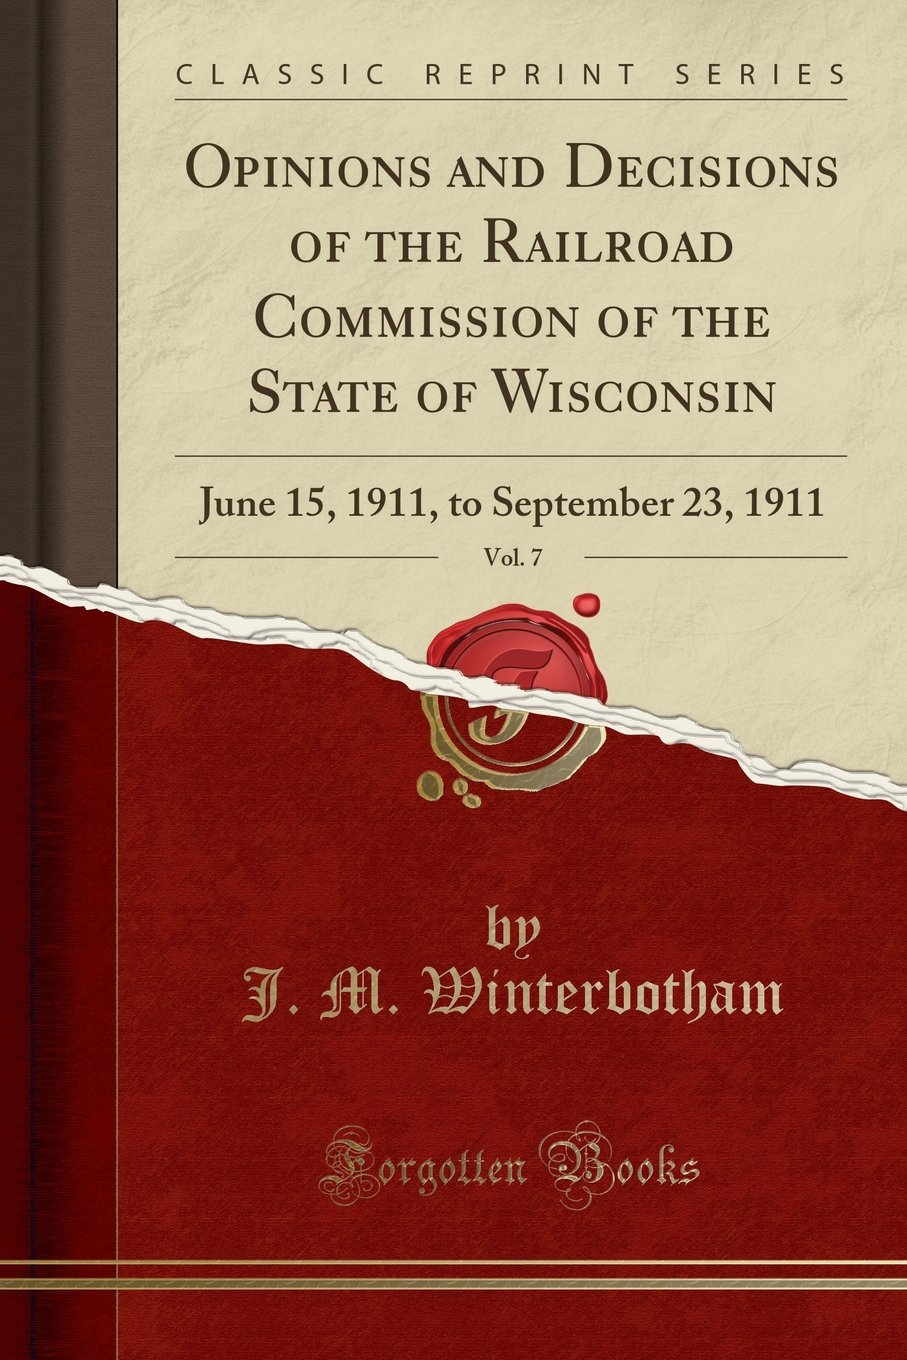 Opinions and Decisions of the Railroad Commission of the State of Wisconsin, Vol. 7: June 15, 1911, to September 23, 1911 (Classic Reprint) pdf